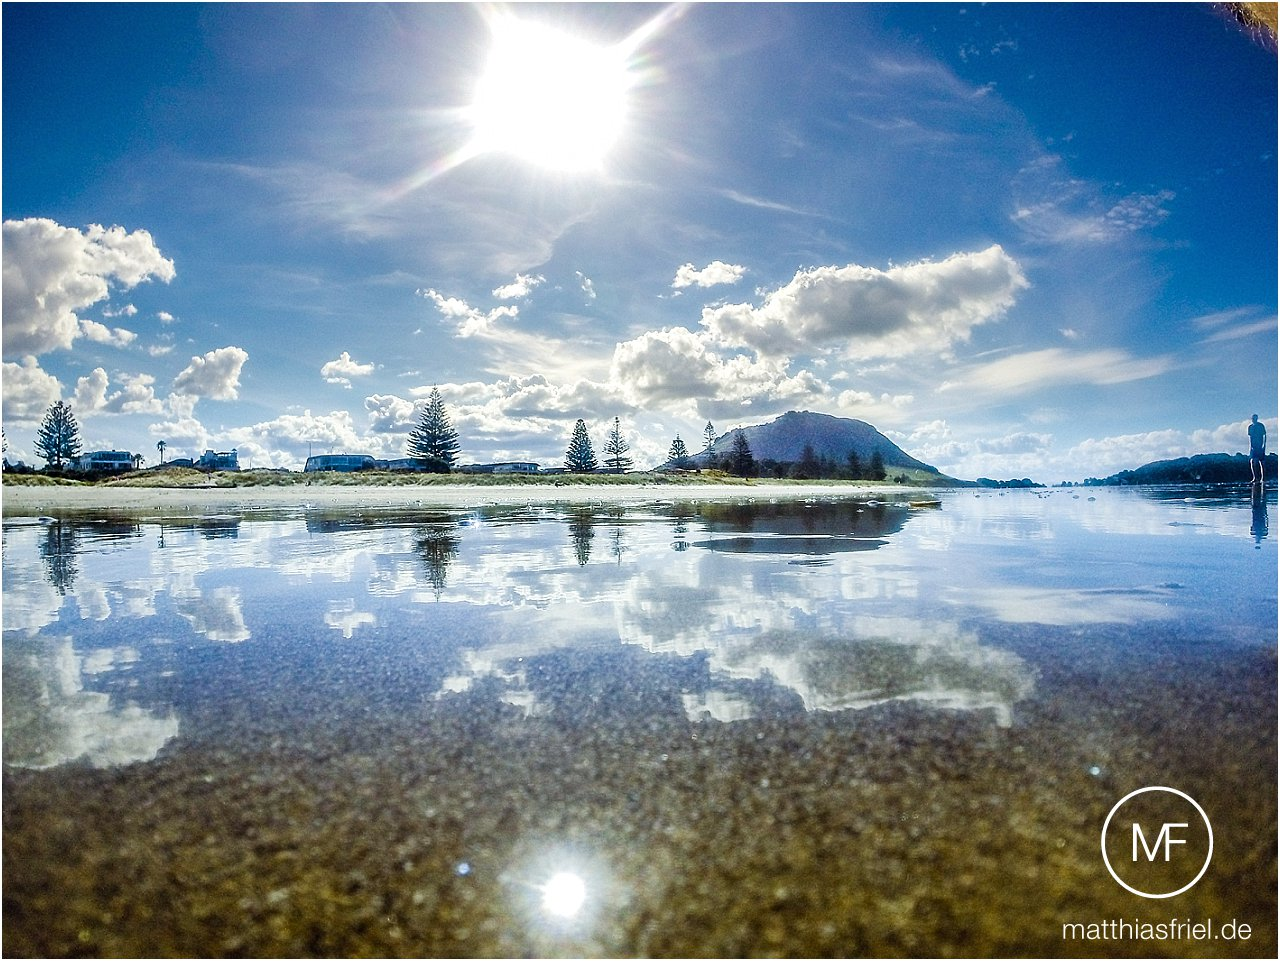 travel-new-zealand-matthias-friel_0068